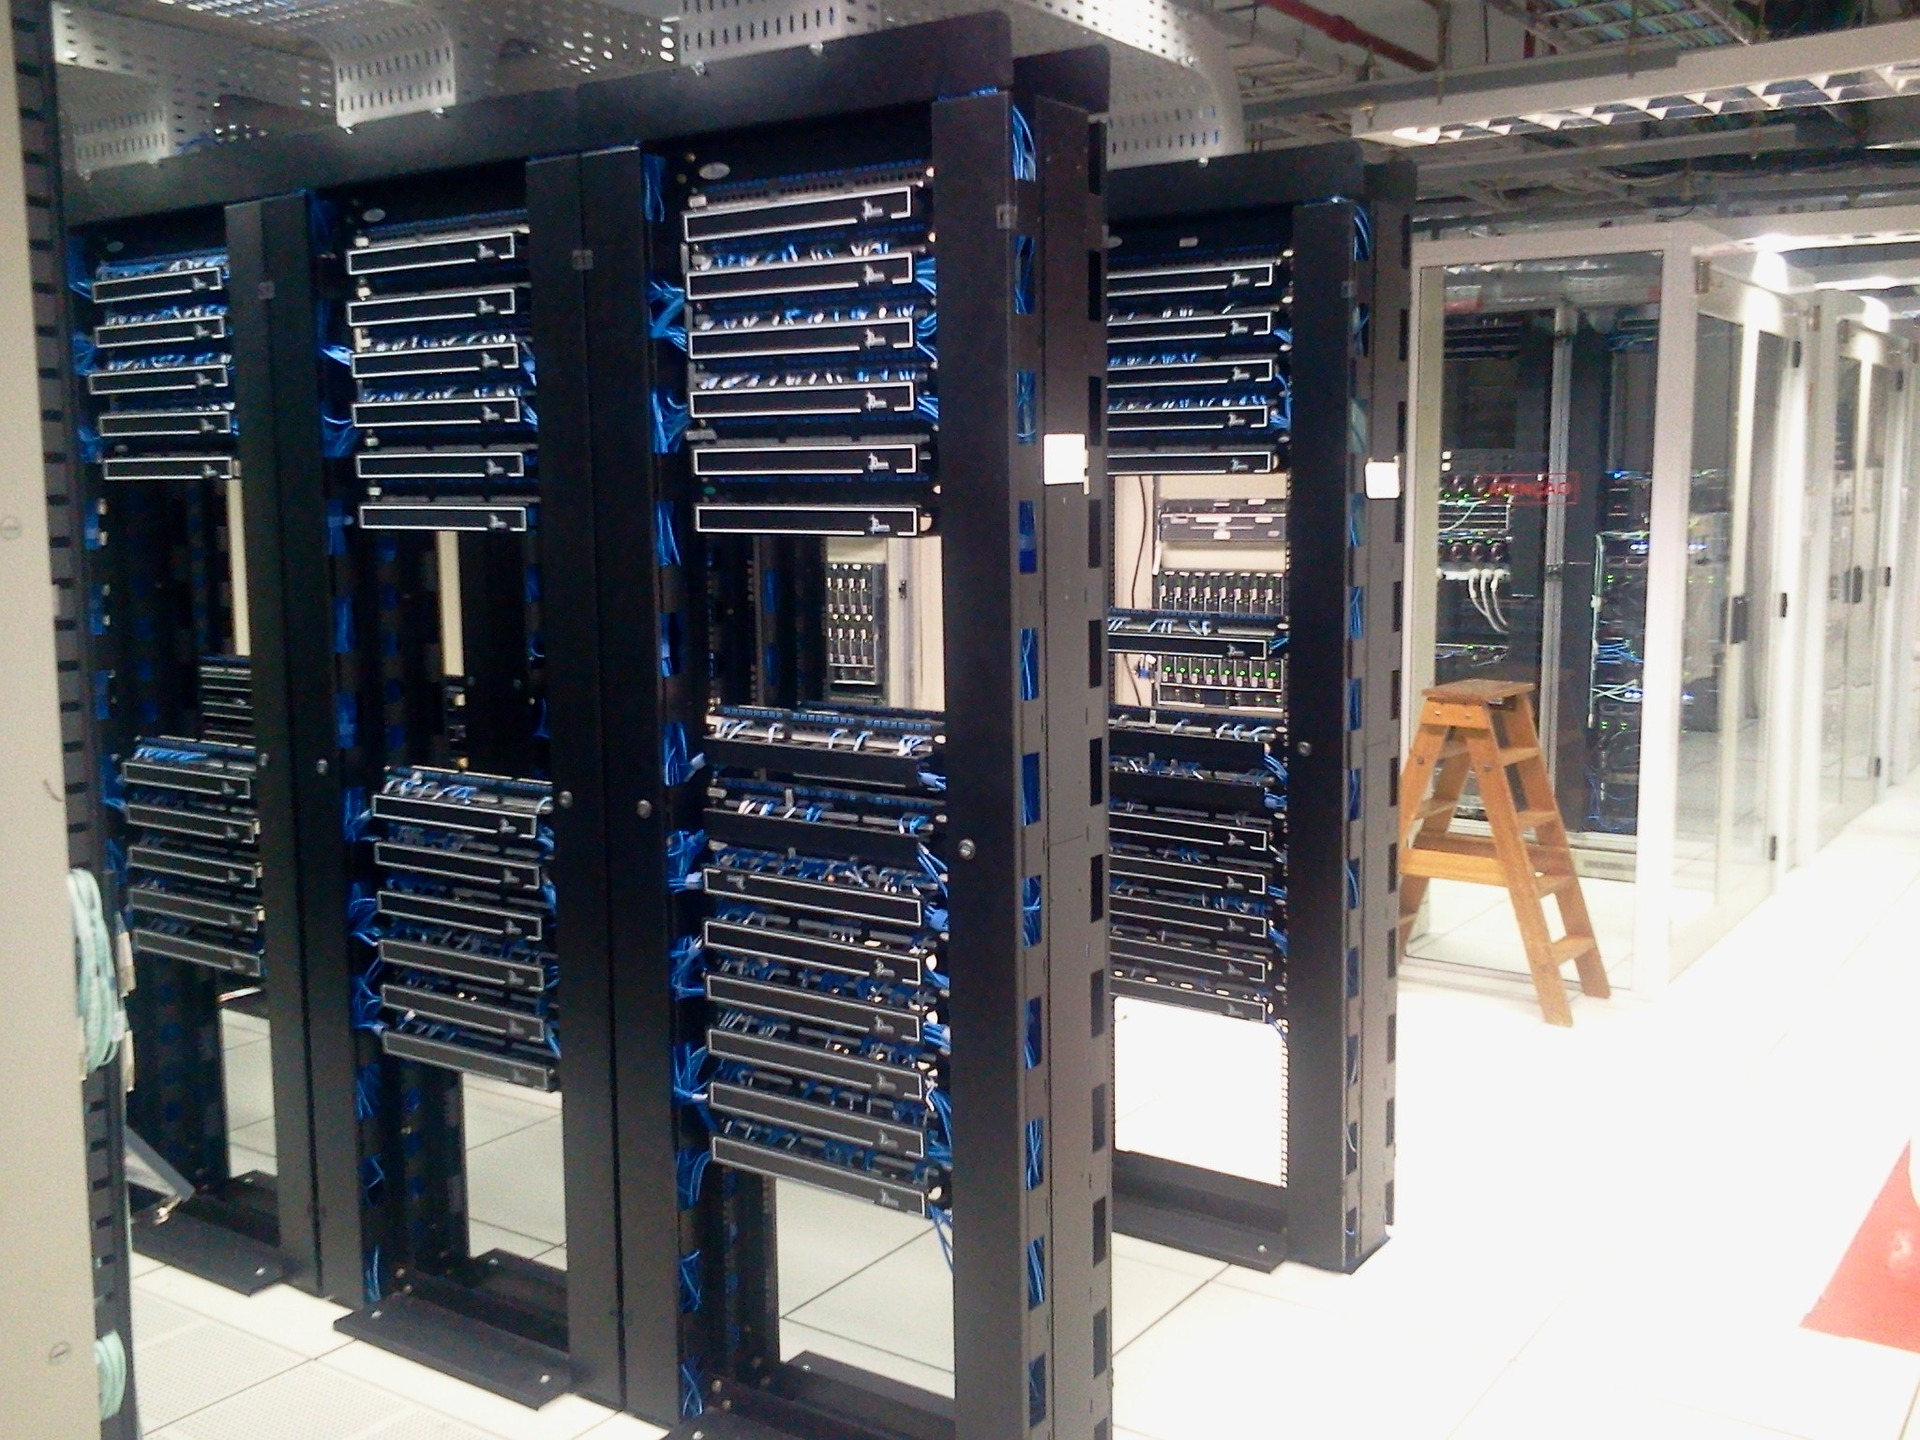 Should You Sign Up for Unmanaged Dedicated Servers? - Image 1